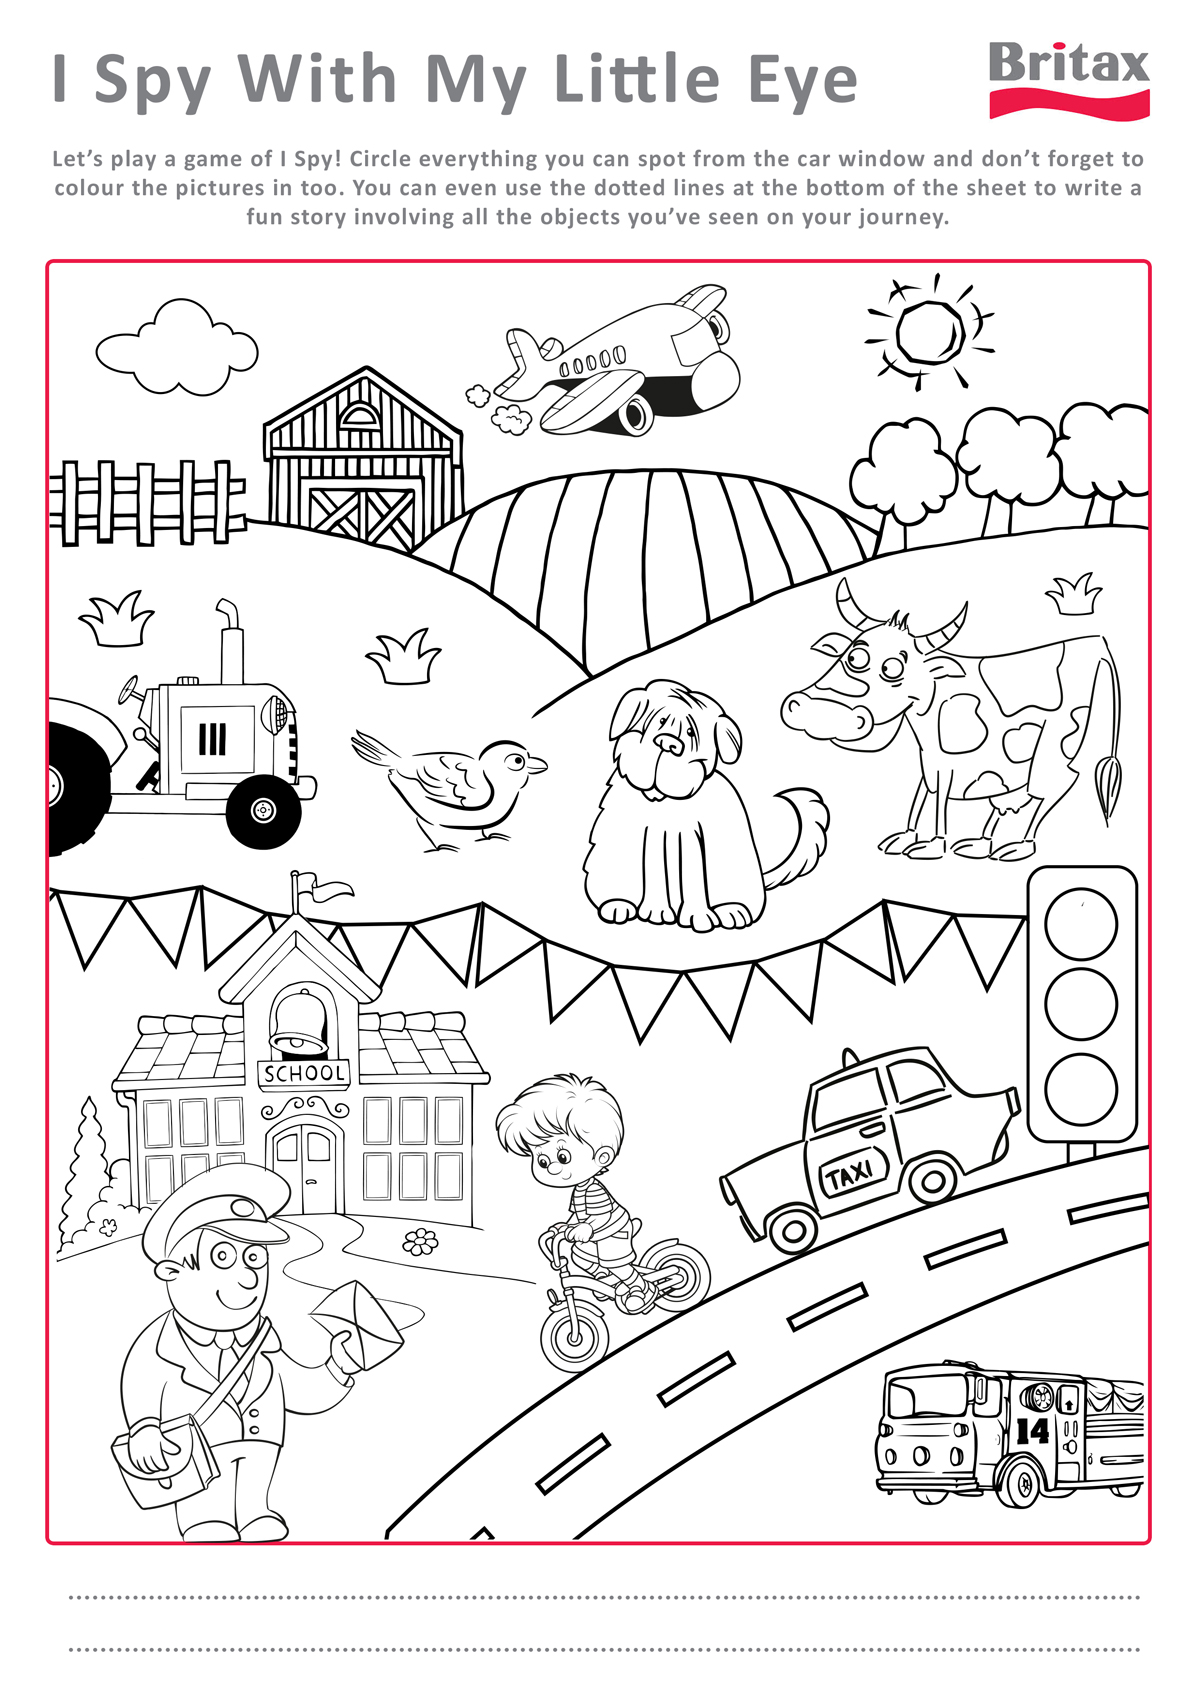 Staying sane in the car free BRITAX activity sheets for car – I Spy Worksheets